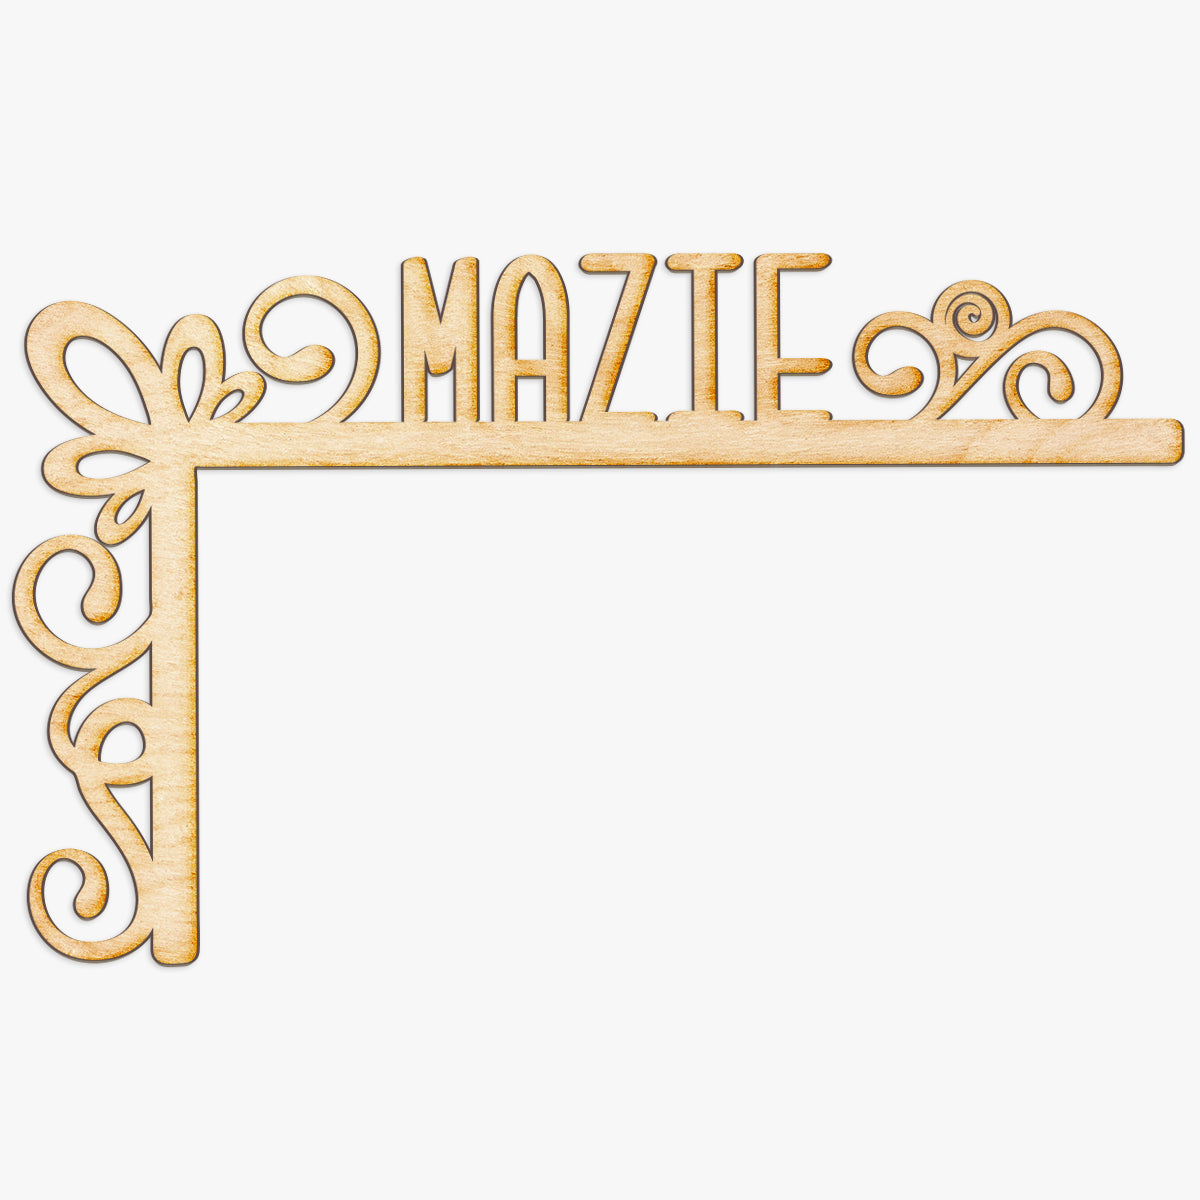 Custom Name Swirly Wood Door Topper